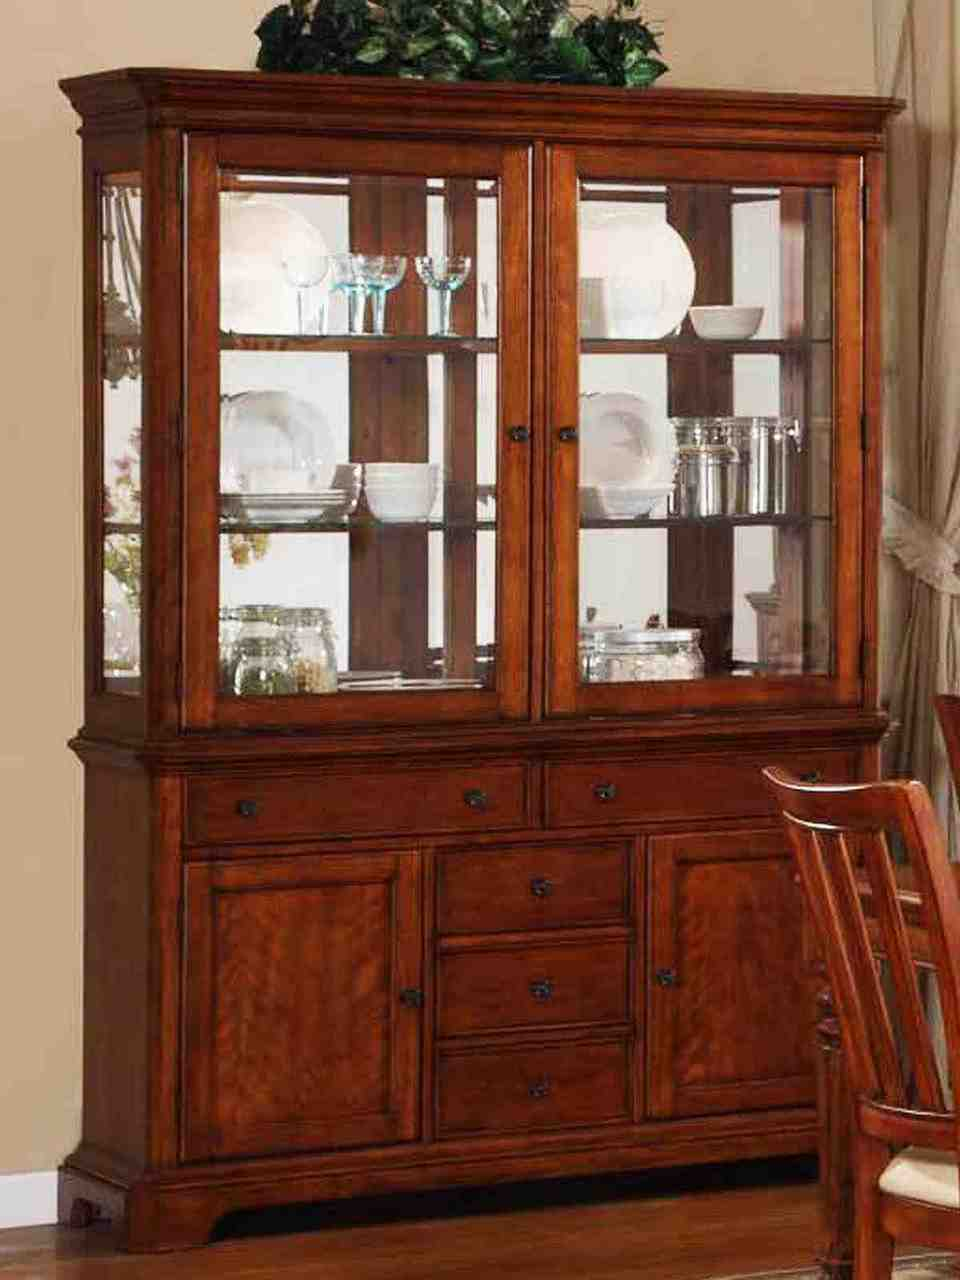 China Cabinet Brings Traditional Style and Storage to Your